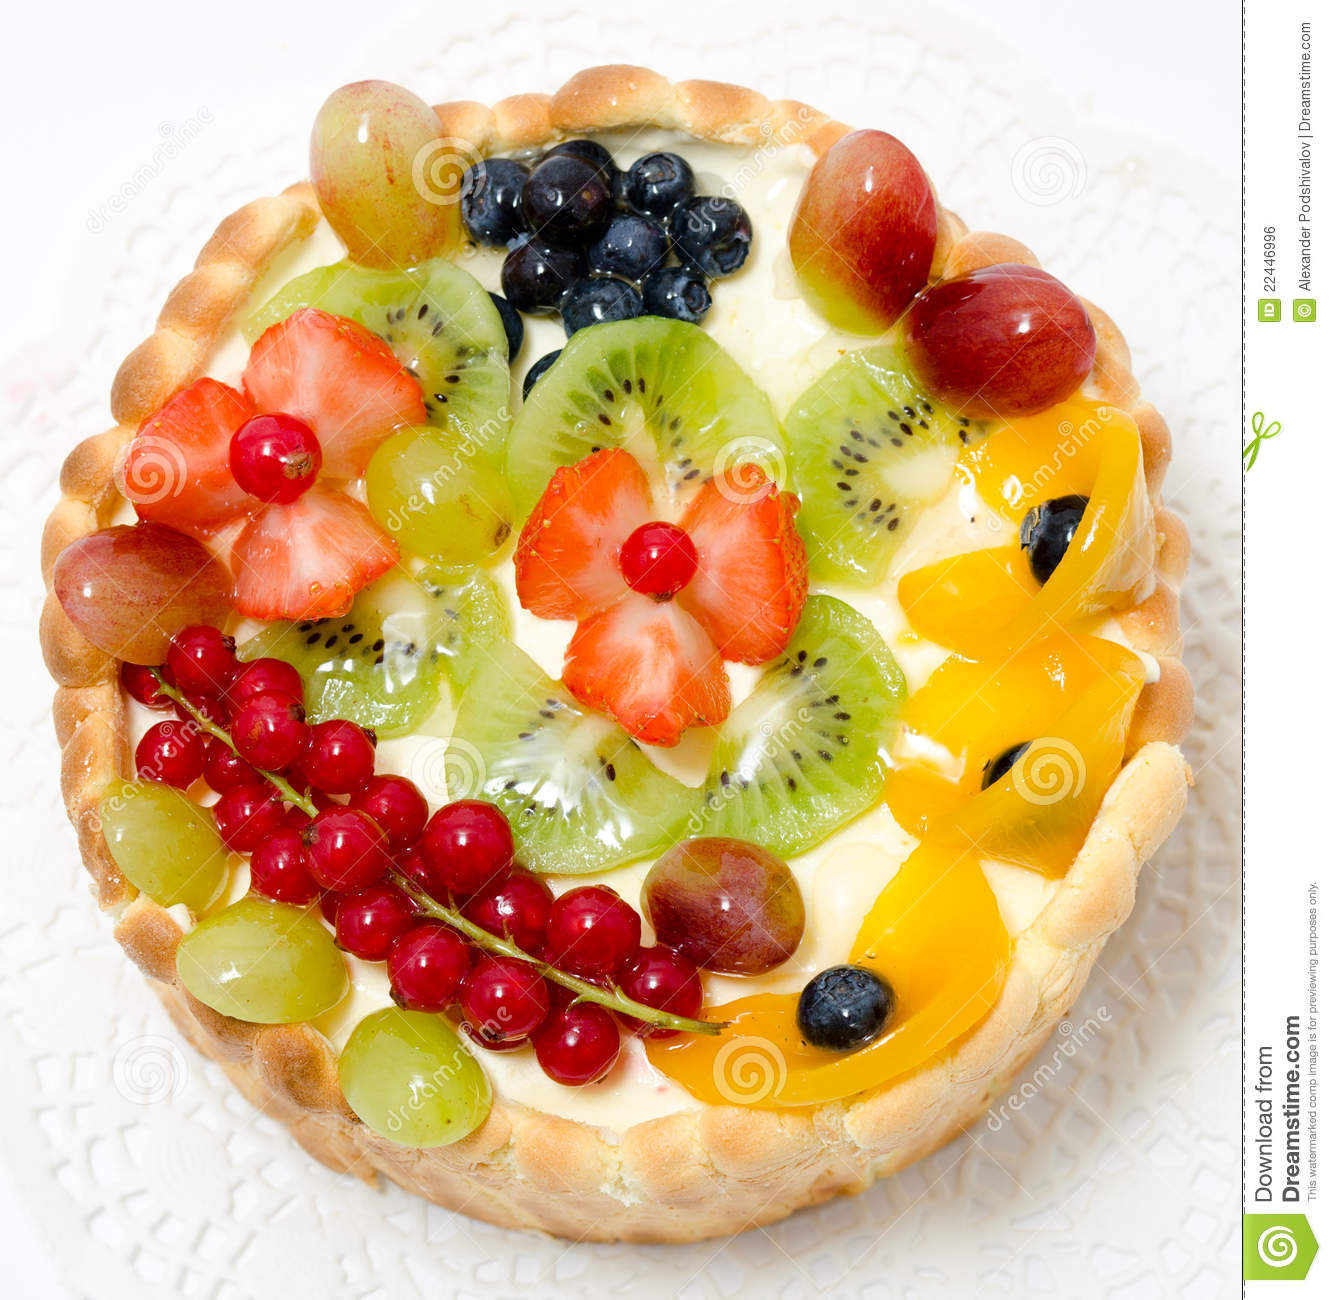 Cake With Fruits On Top : Fruit And Berry Cake Royalty Free Stock Image - Image ...